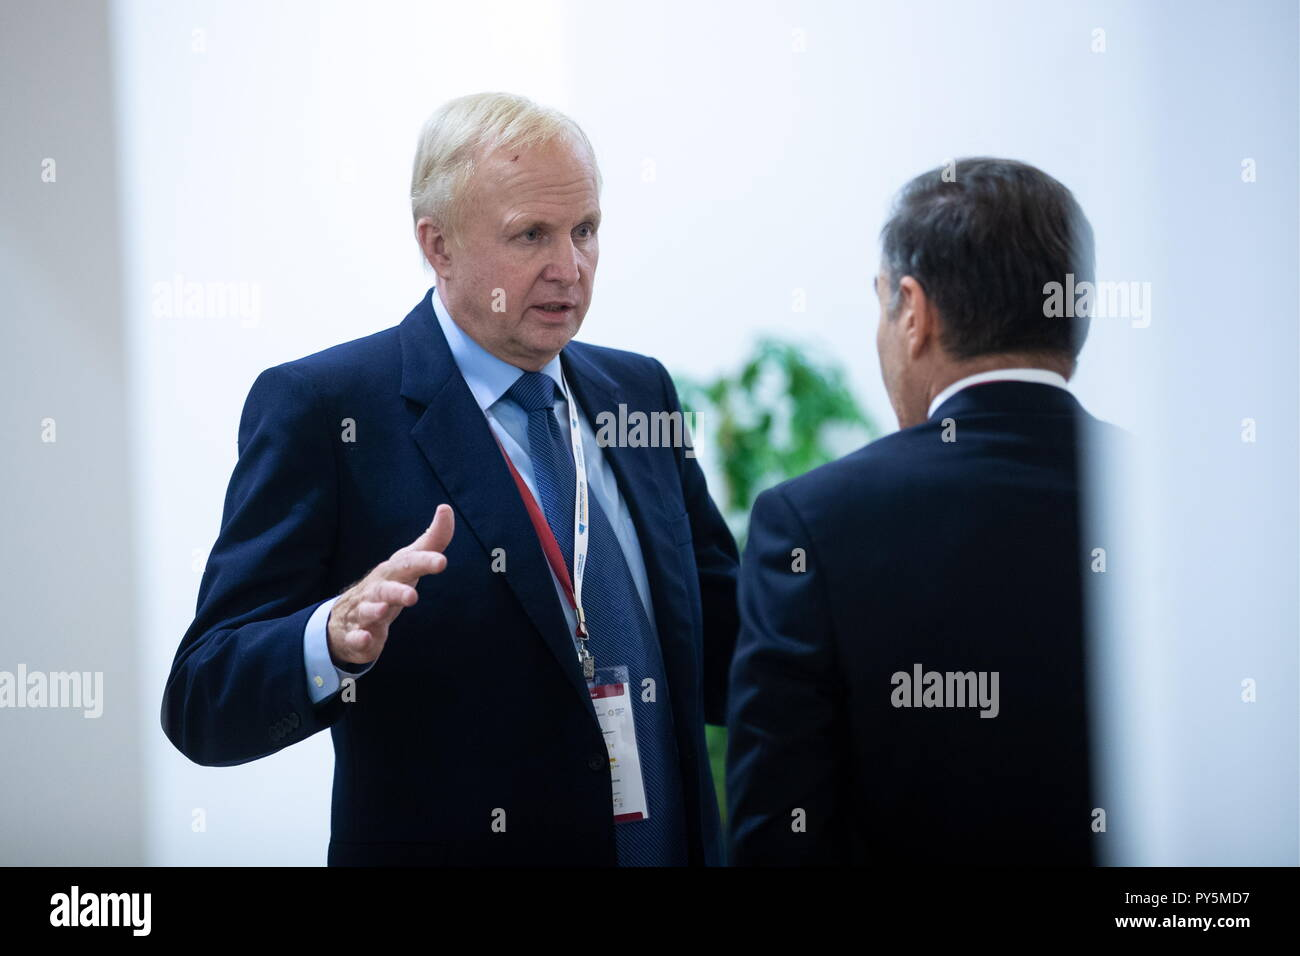 Verona, Italy. 25th Oct, 2018. VERONA, ITALY - OCTOBER 25, 2018: BP CEO Robert Dudley (L) the 11th Eurasian Economic Forum titled 'The Economy of Trust and Business Diplomacy From the Atlantic to the Pacific.' Sergei Bobylev/TASS Credit: ITAR-TASS News Agency/Alamy Live News - Stock Image